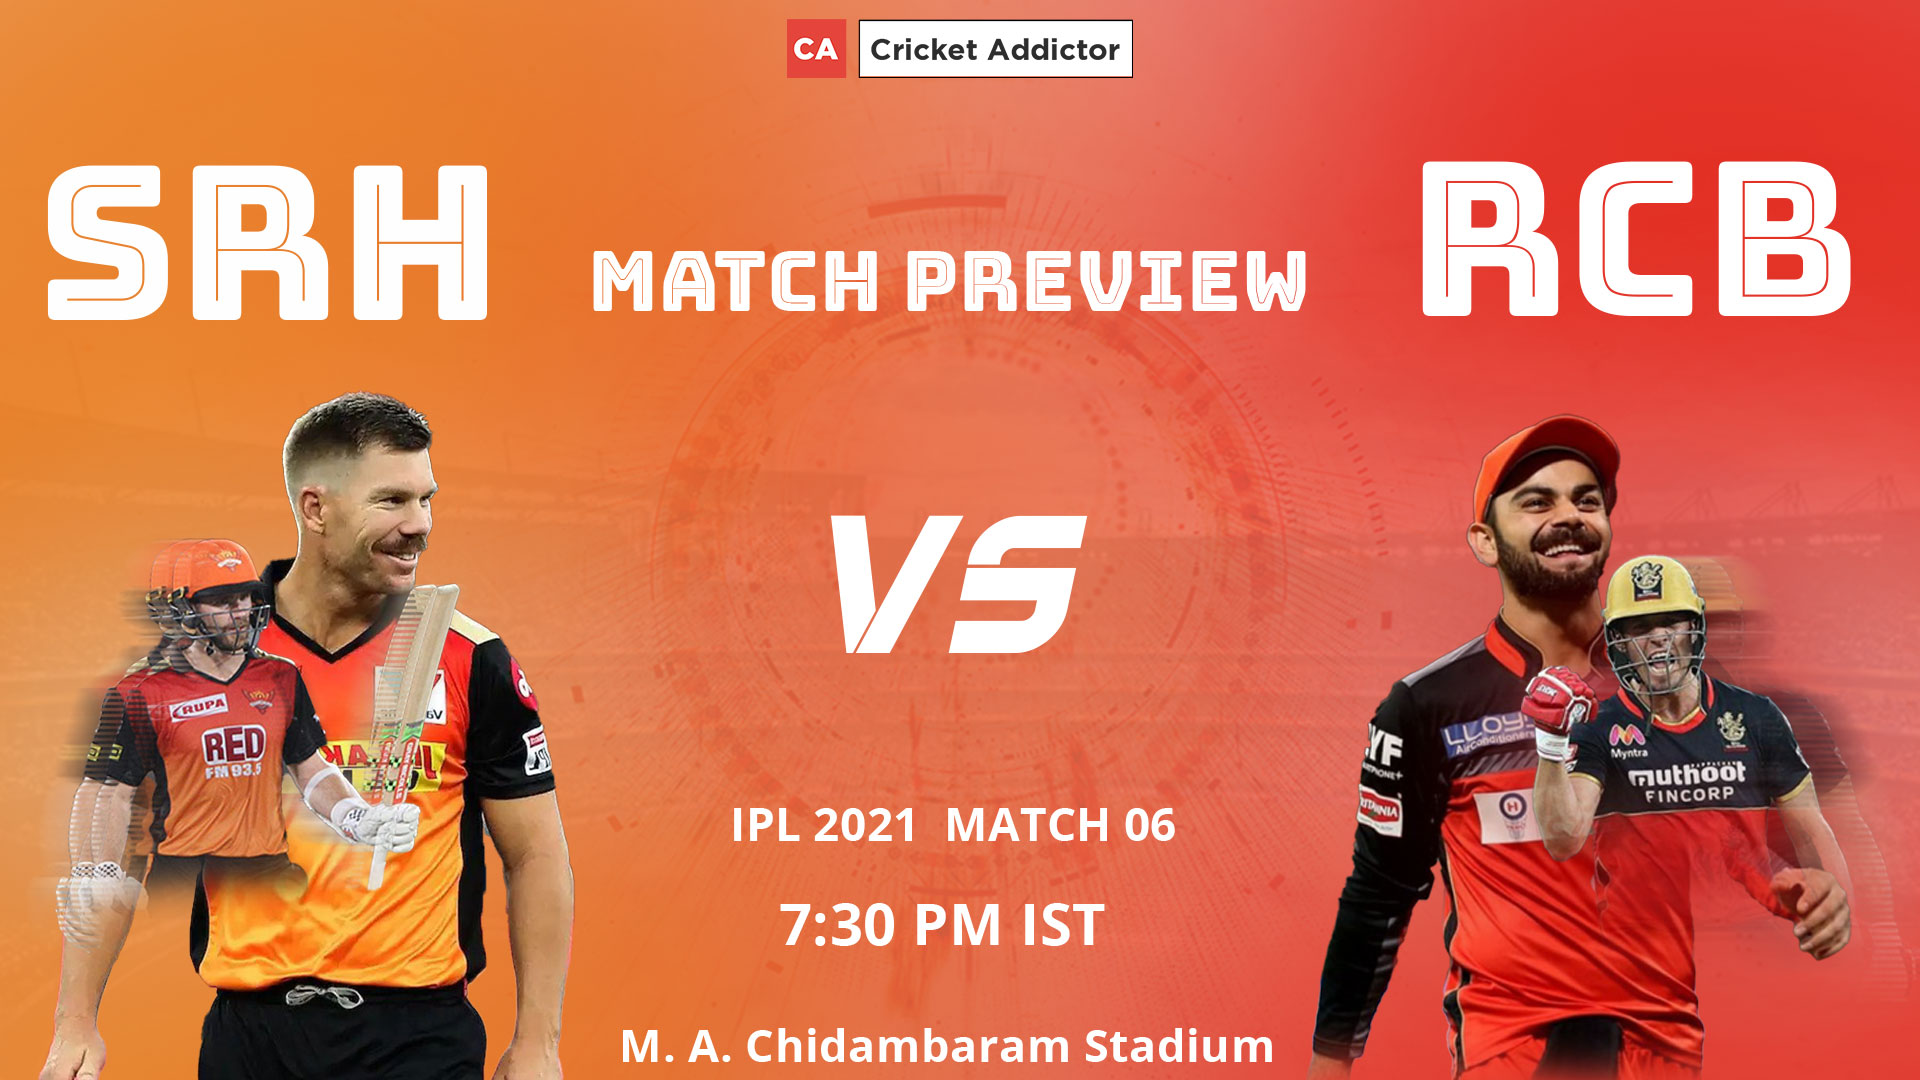 IPL 2021, Royal Challengers Bangalore, SunRisers Hyderabad, SRH, RCB, SRH vs RCB, Match Preview, Prediction